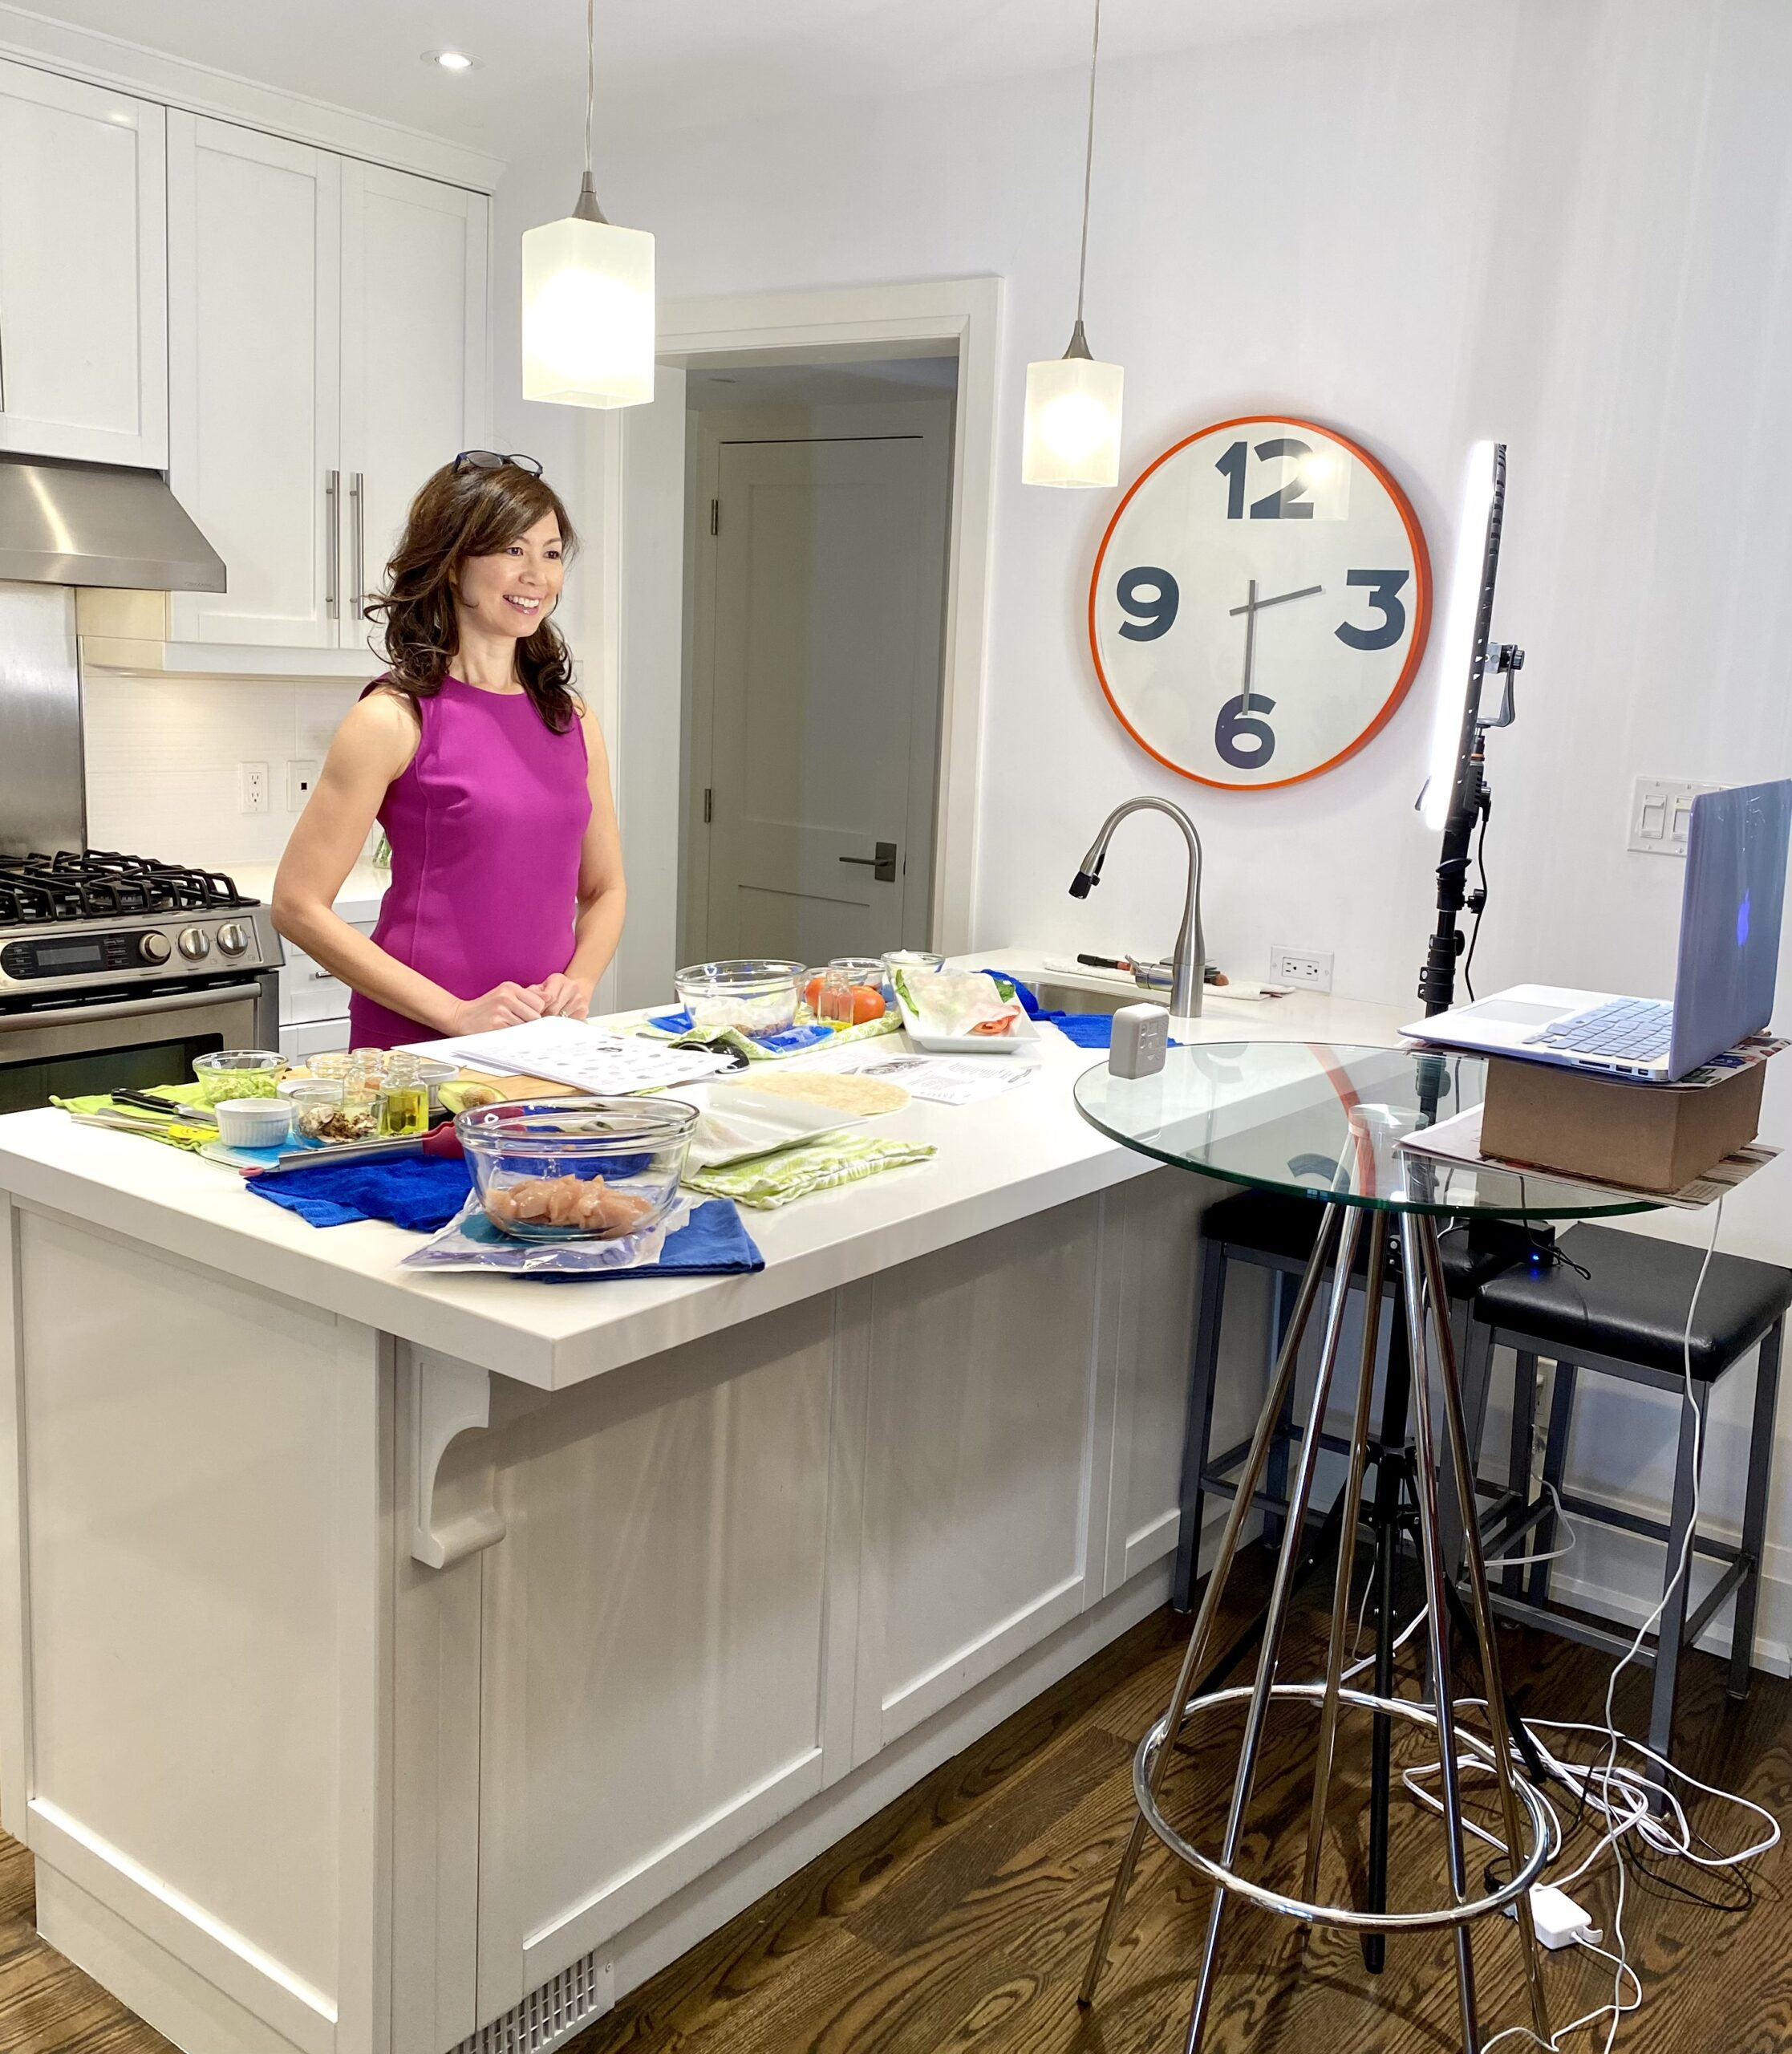 Sue is wearing a pink sleeveless dress and standing behind her white kitchen counter. She is looking at the laptop camera. On the counter are ingredients in glass bowls, veggies covered with a damp towel and a bowl of raw chicken placed on an ice-pak.